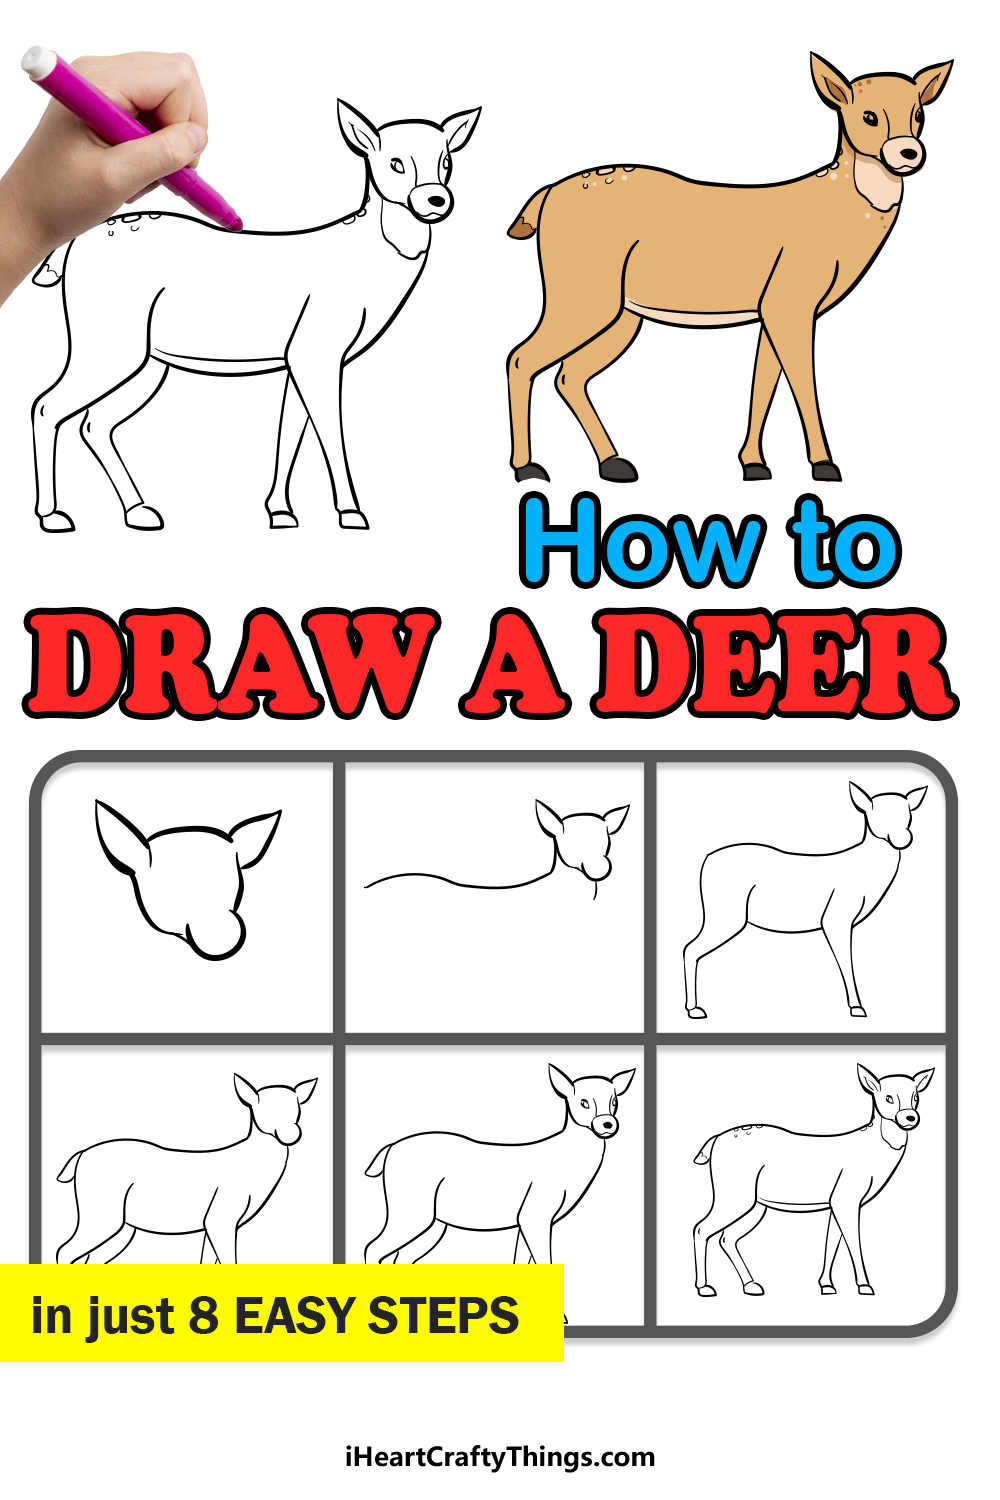 how to draw a deer in 8 easy steps